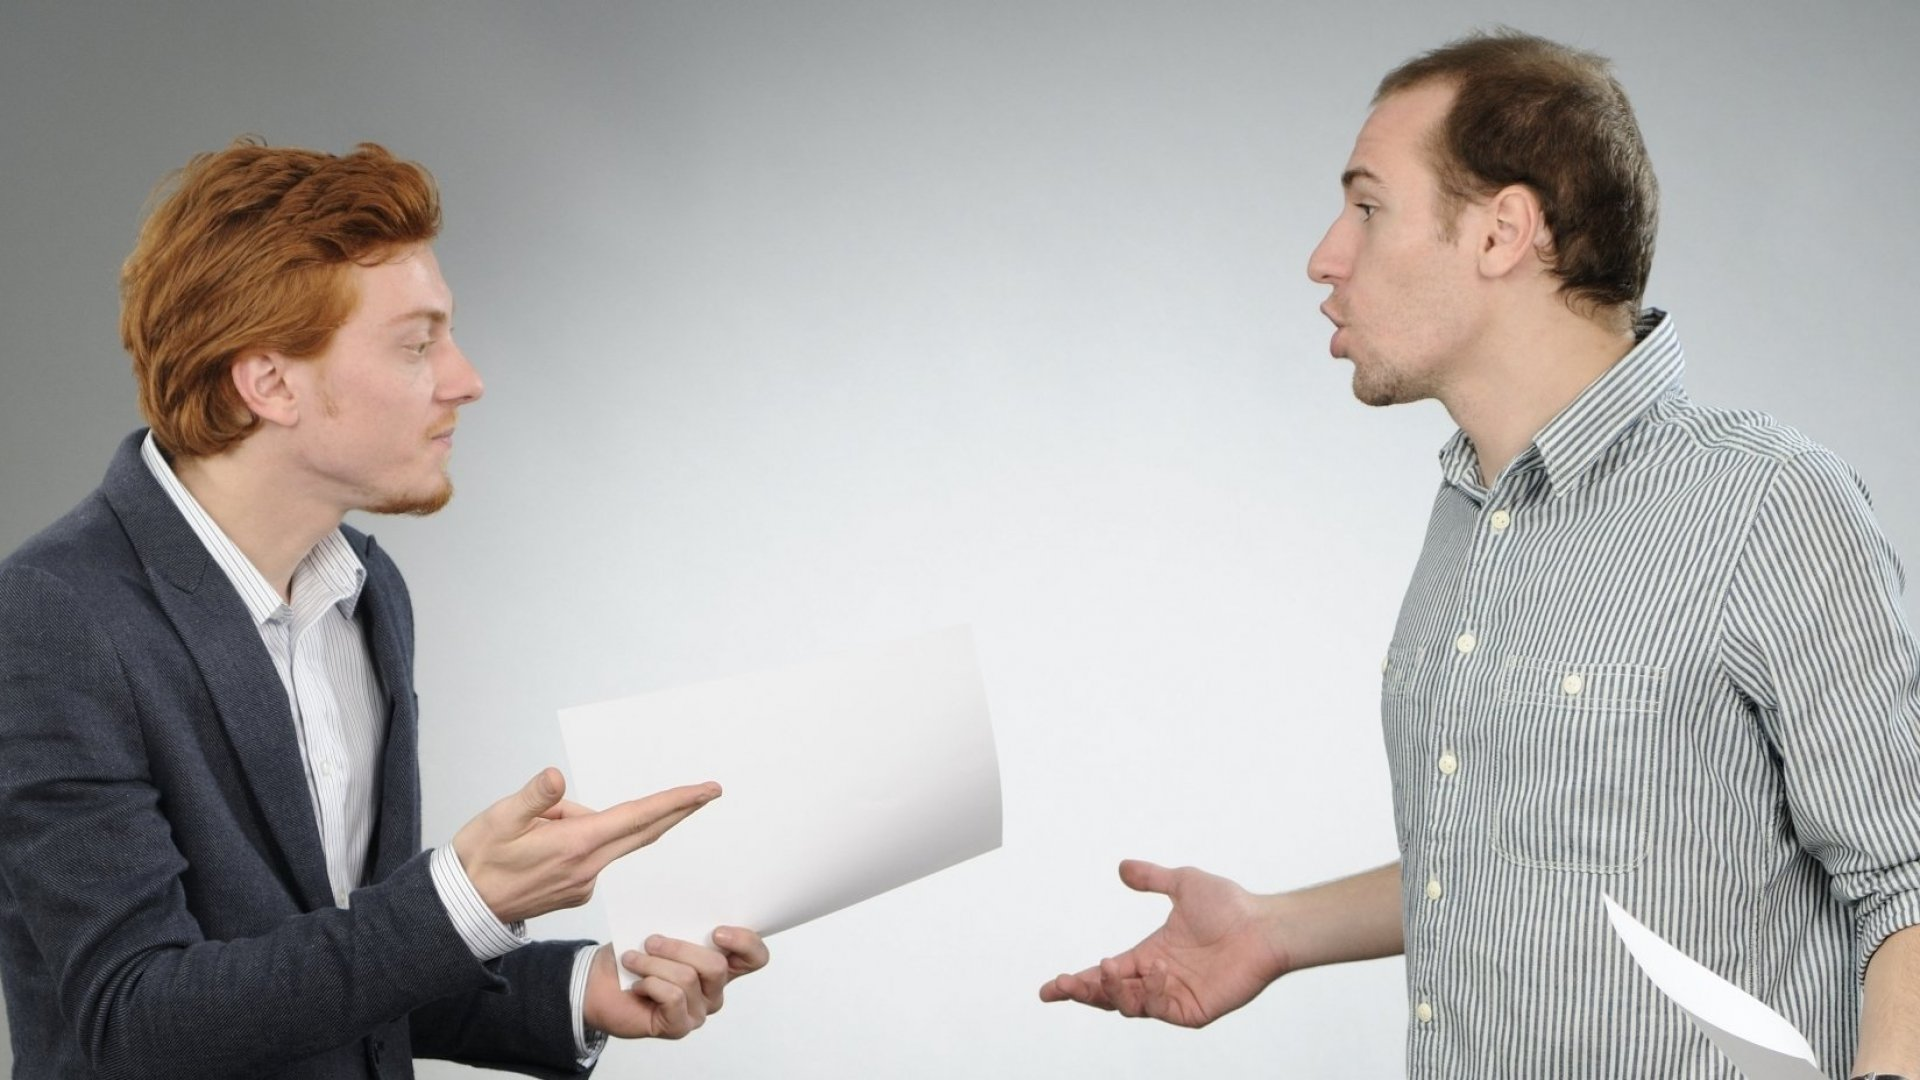 3 Body Language Mistakes That Can Make You Look Really Unprofessional